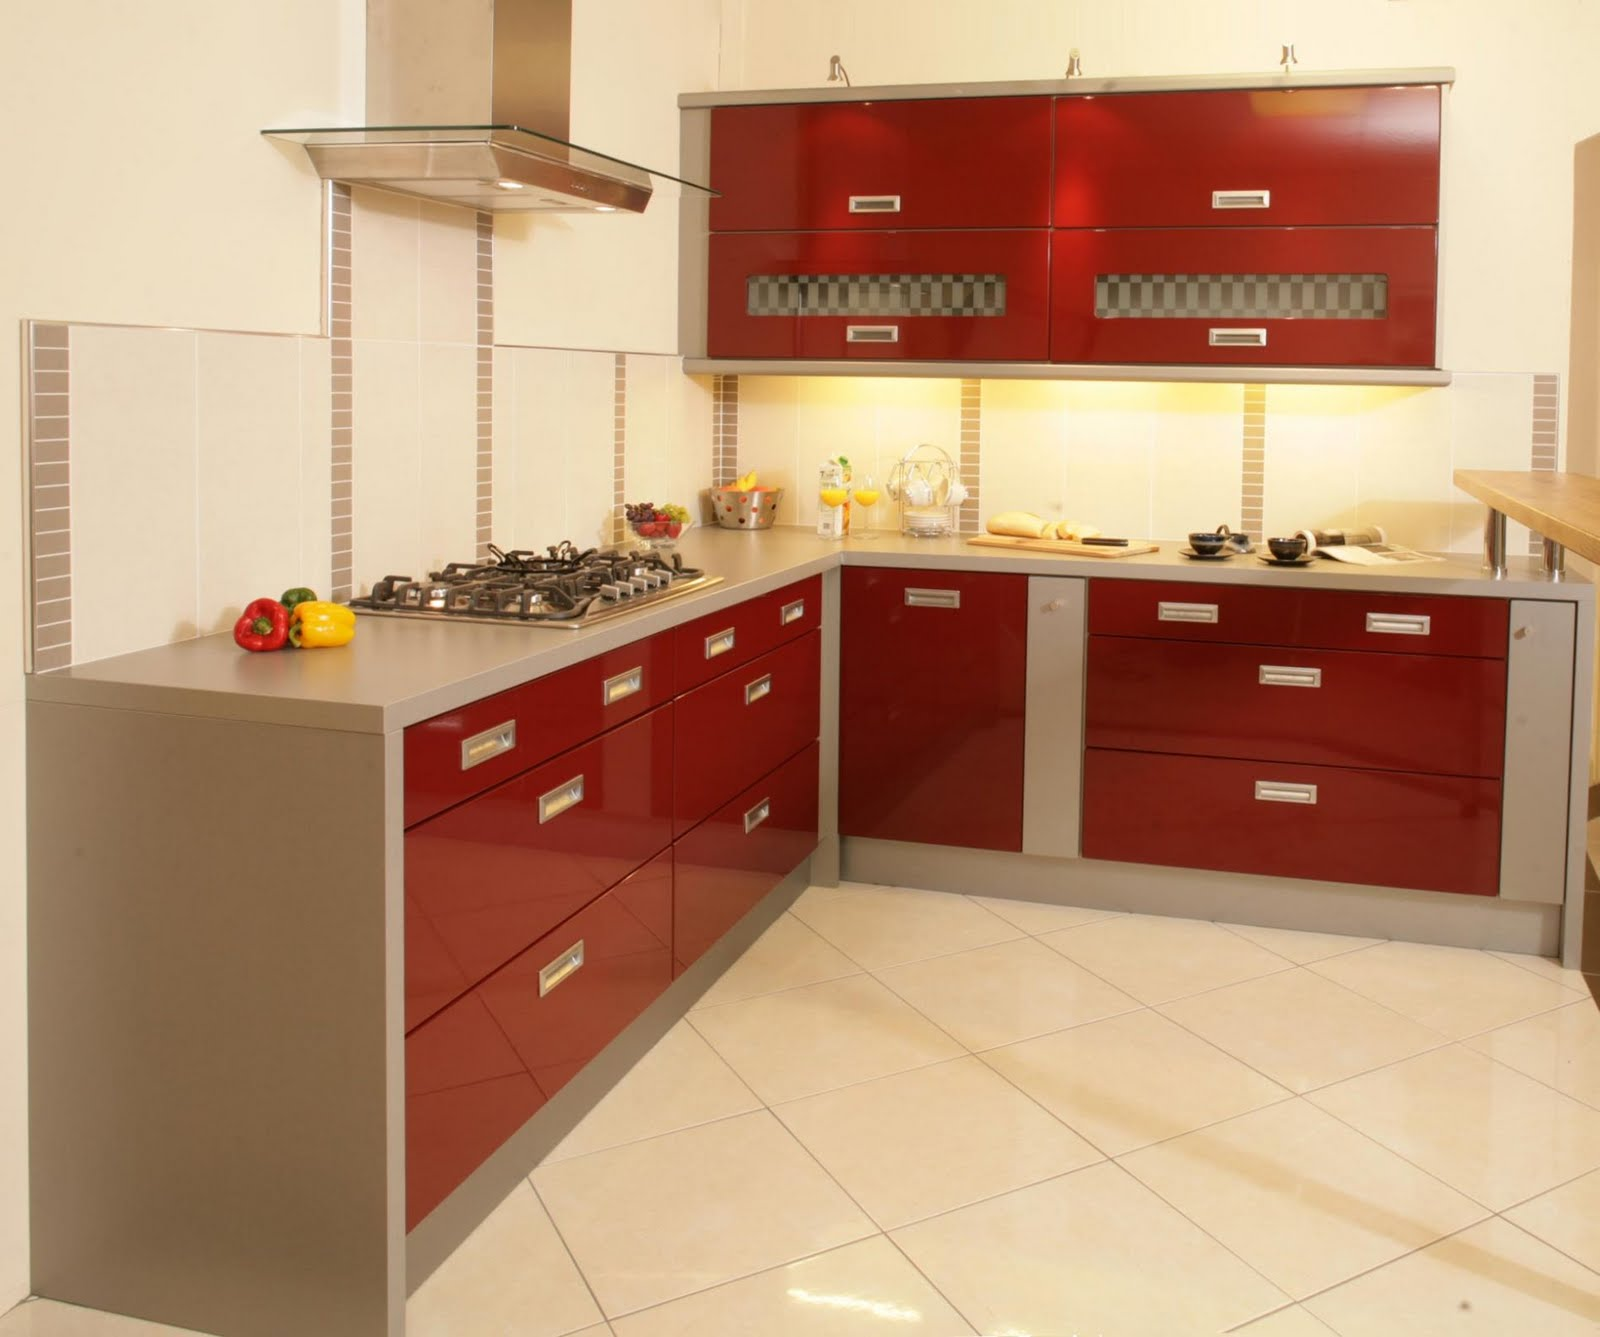 Pictures of red kitchen cabinets kitchen design best for Kitchen cupboard designs